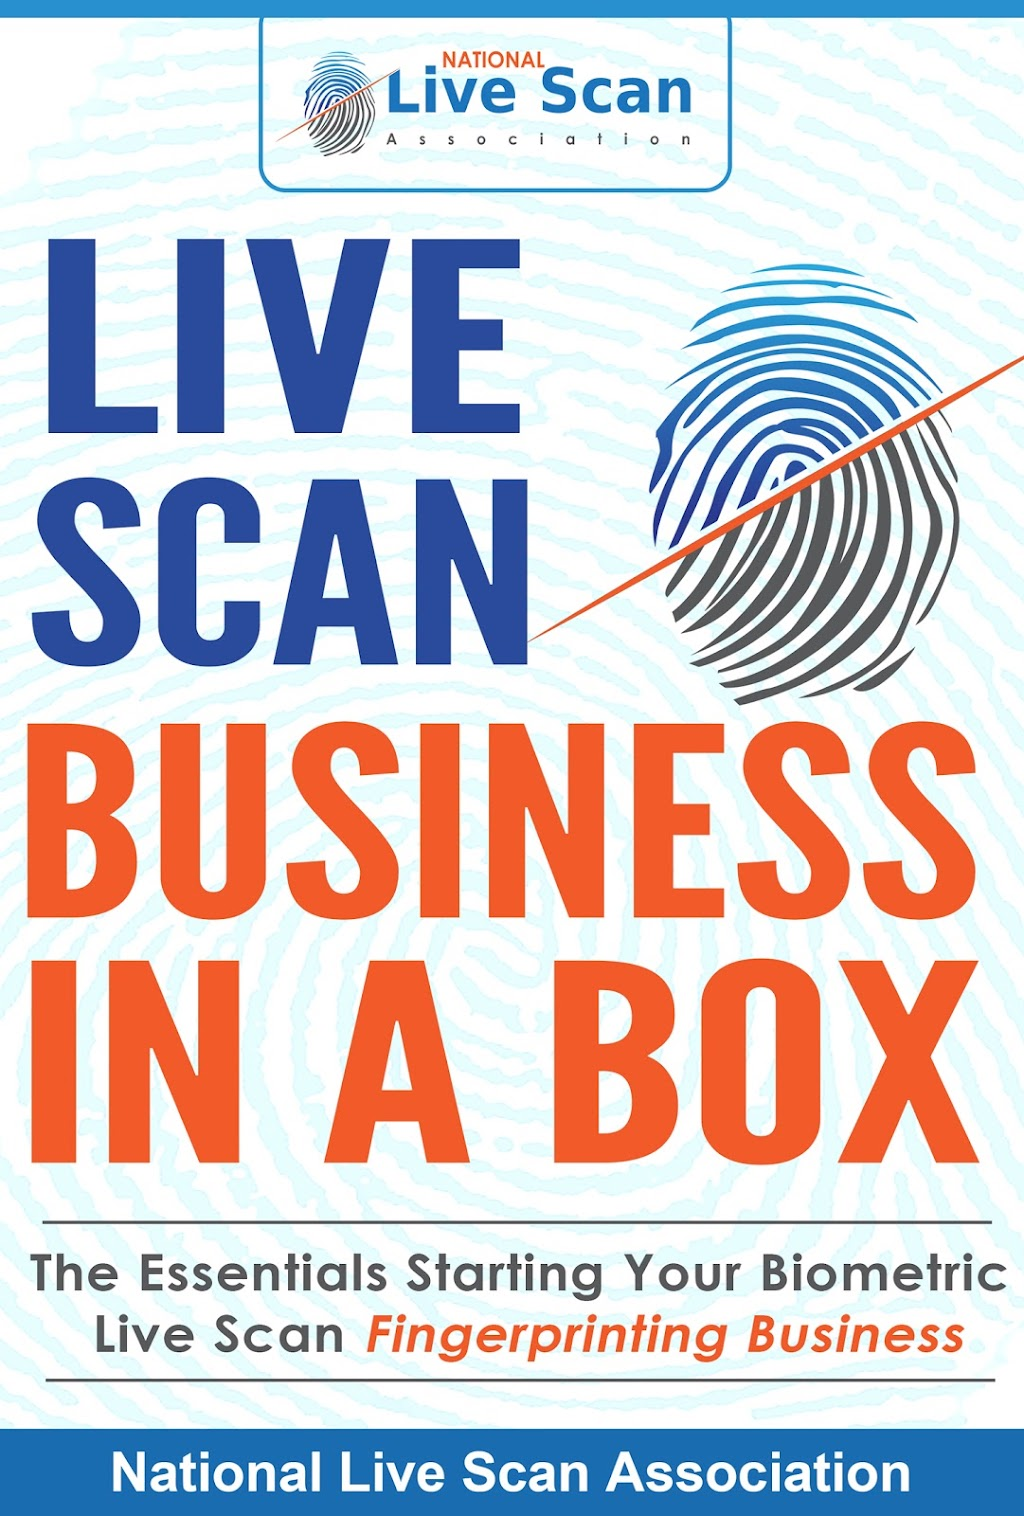 National Live Scan Association (NLSA) 888.498.4234 LiveScanClassesOnline.com Live Scan Business In A Box NationalLiveScan.org (For selected states only.)